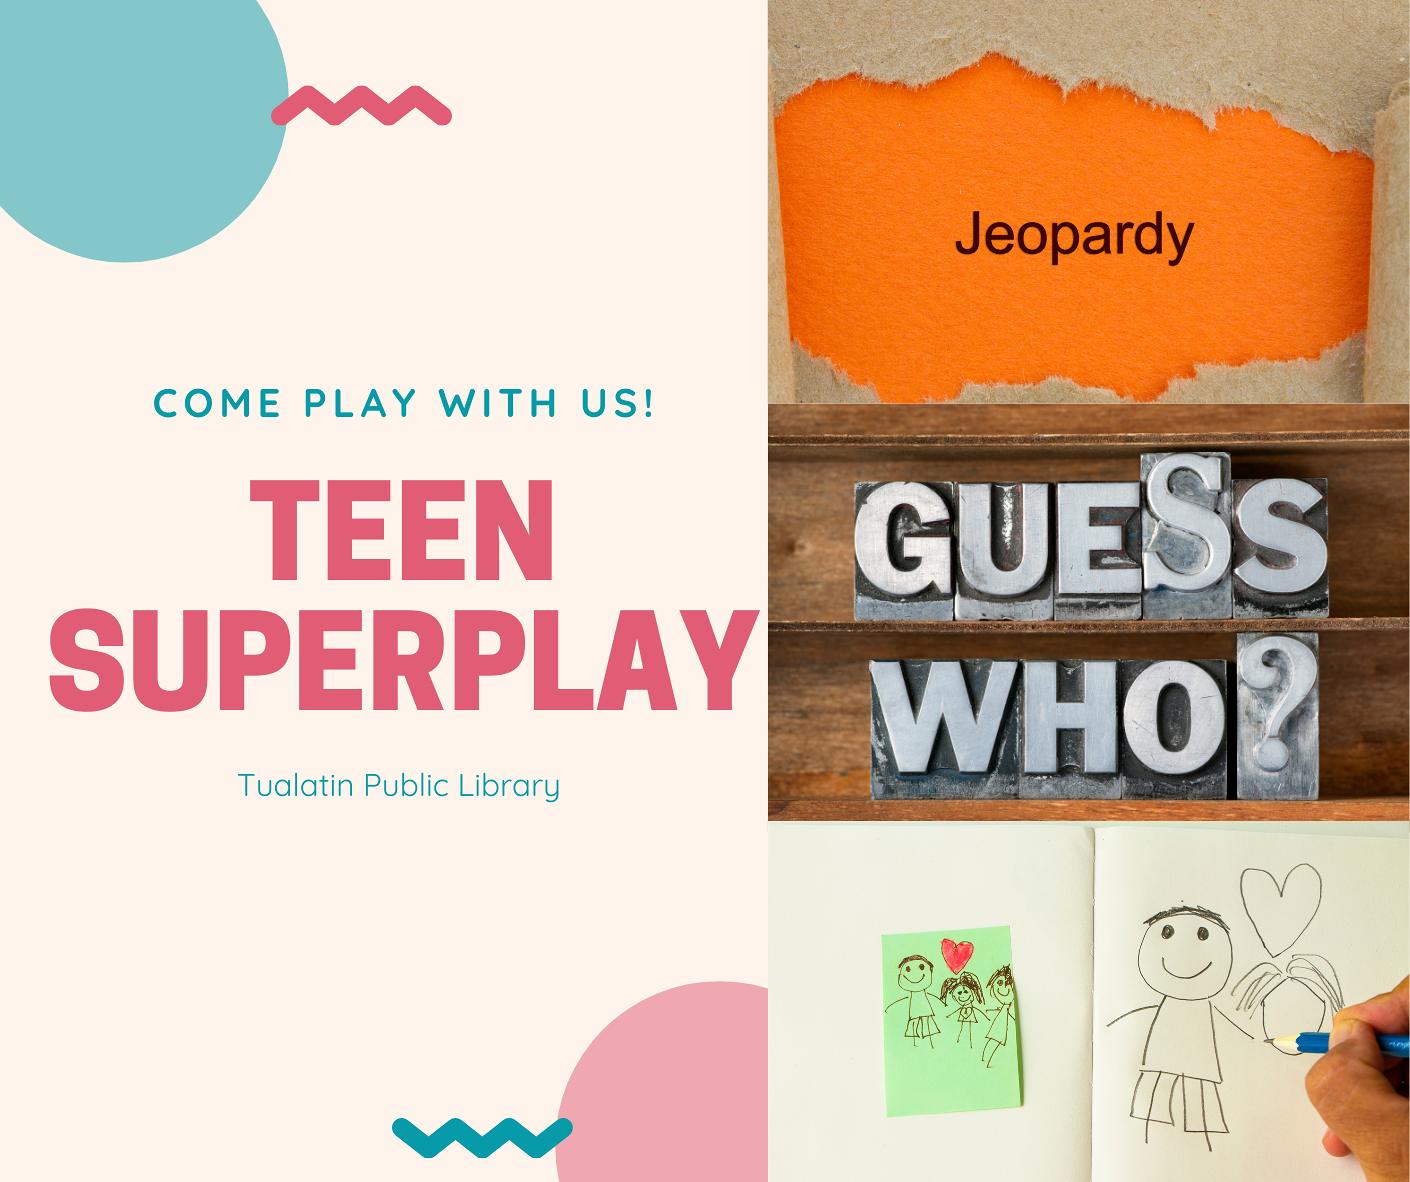 Teen SuperPlay with Jeopardy, Guess Who, and drawing